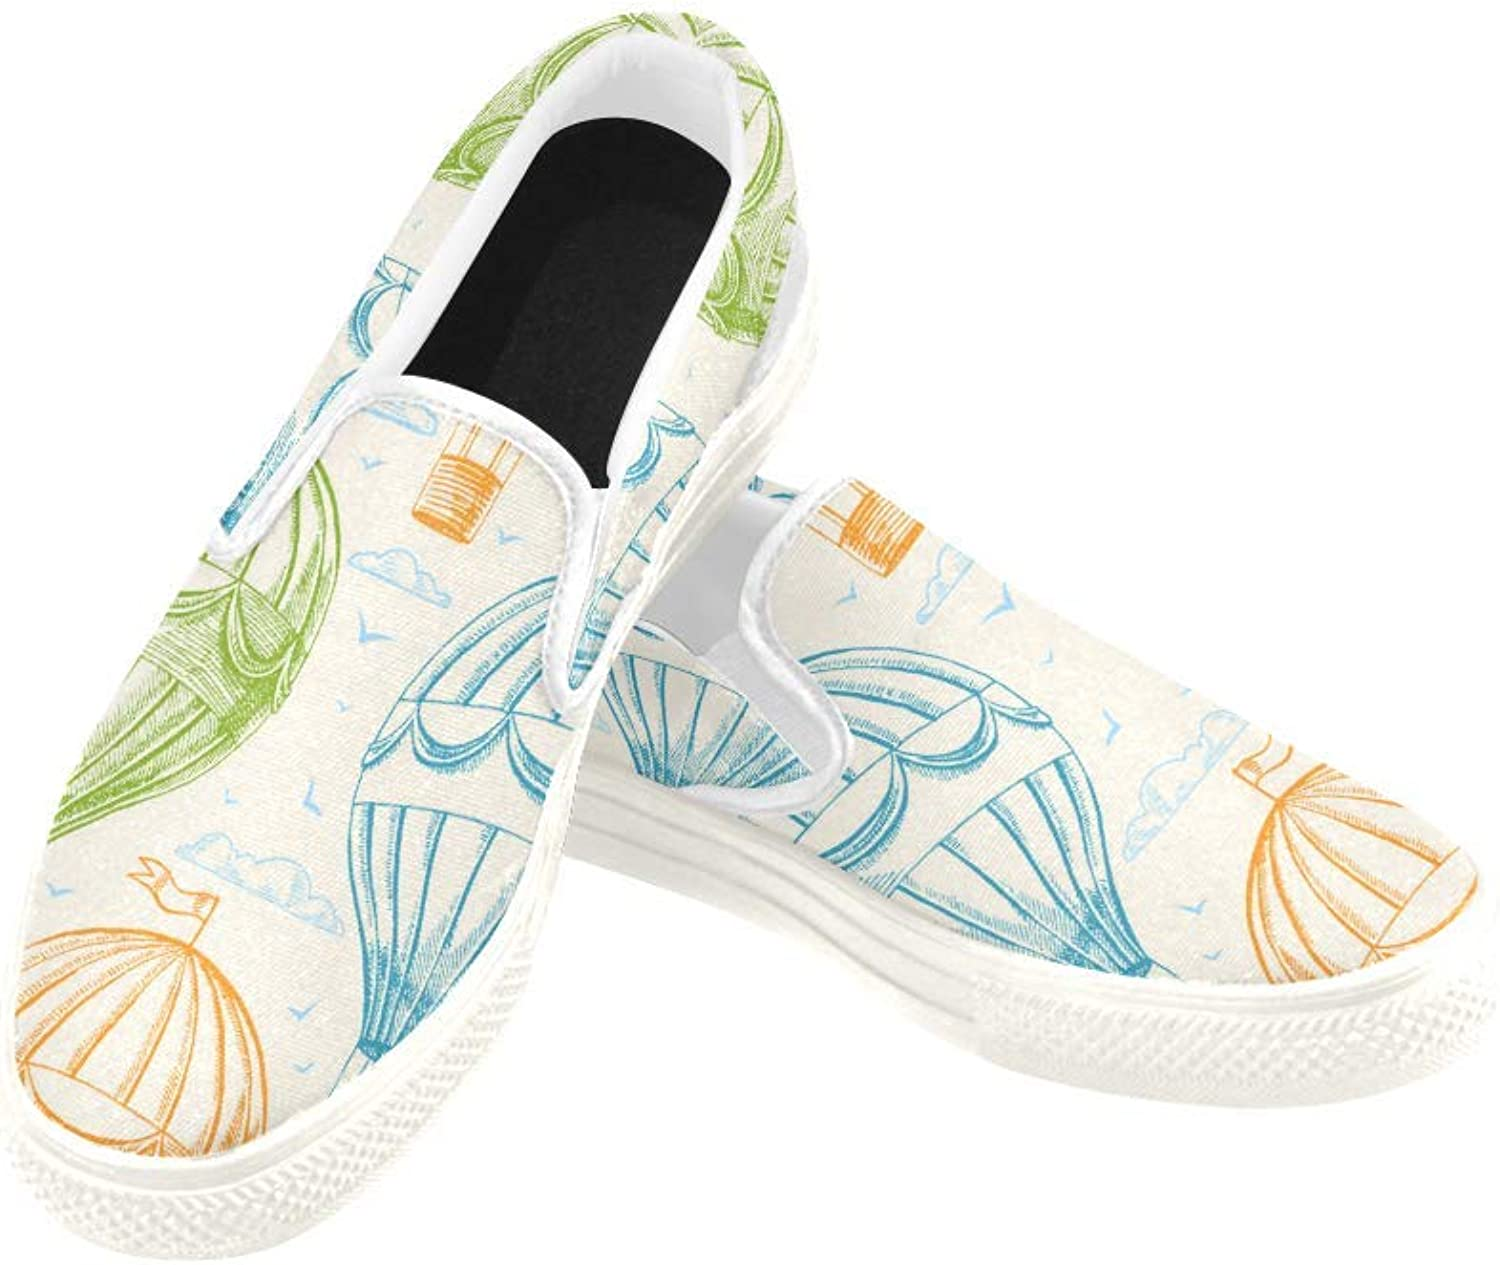 InterestPrint Womens Slip On Canvas shoes Loafers Watercolor Floral Girls Classic Casual Sneakers Flats